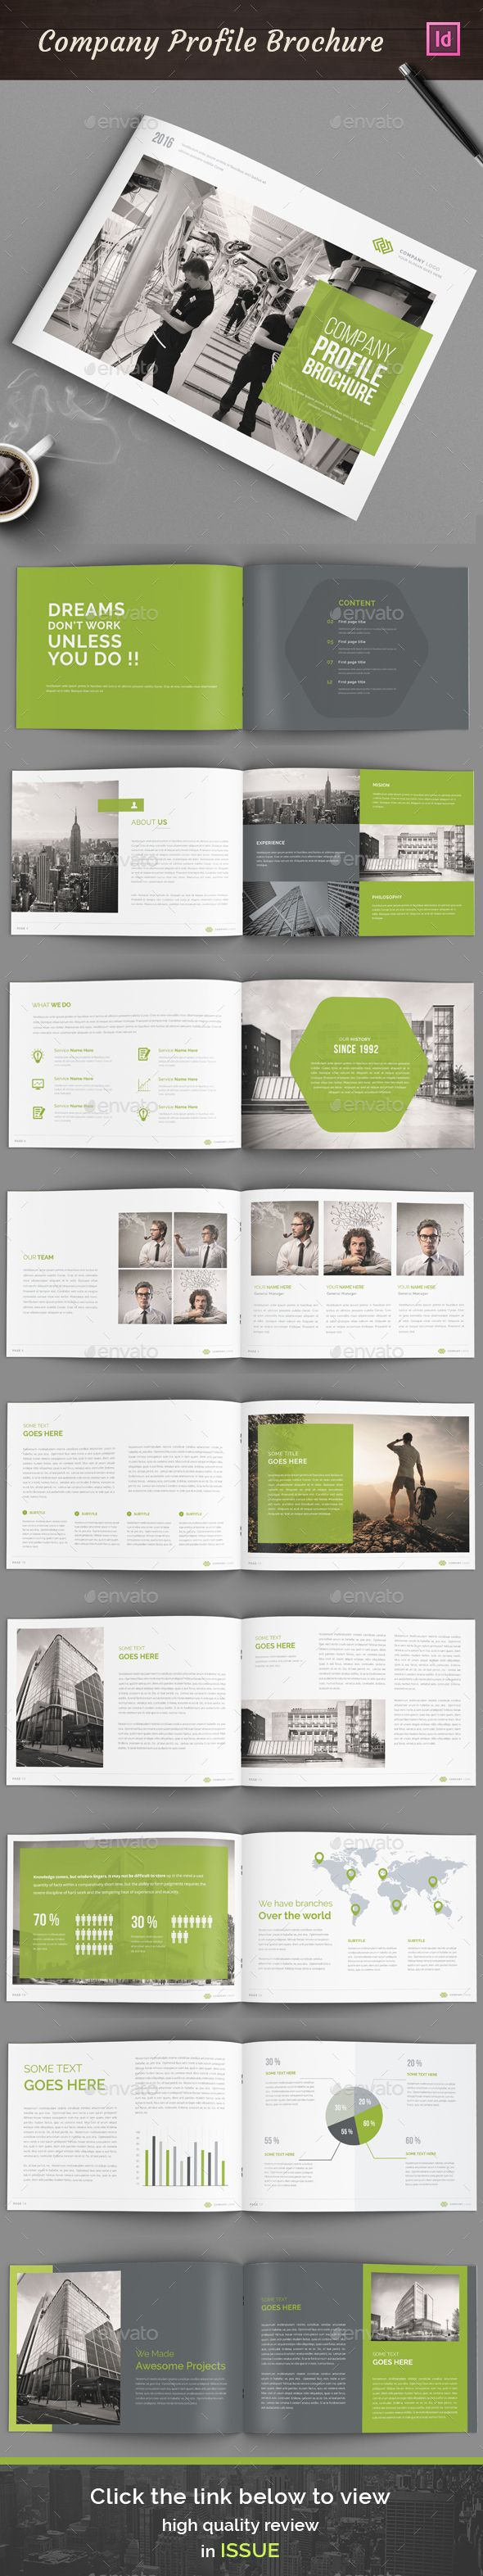 Annual Report Brochure • Available here → http://graphicriver.net/item/annual-report-brochure/15434457?s_rank=144&ref=pxcr